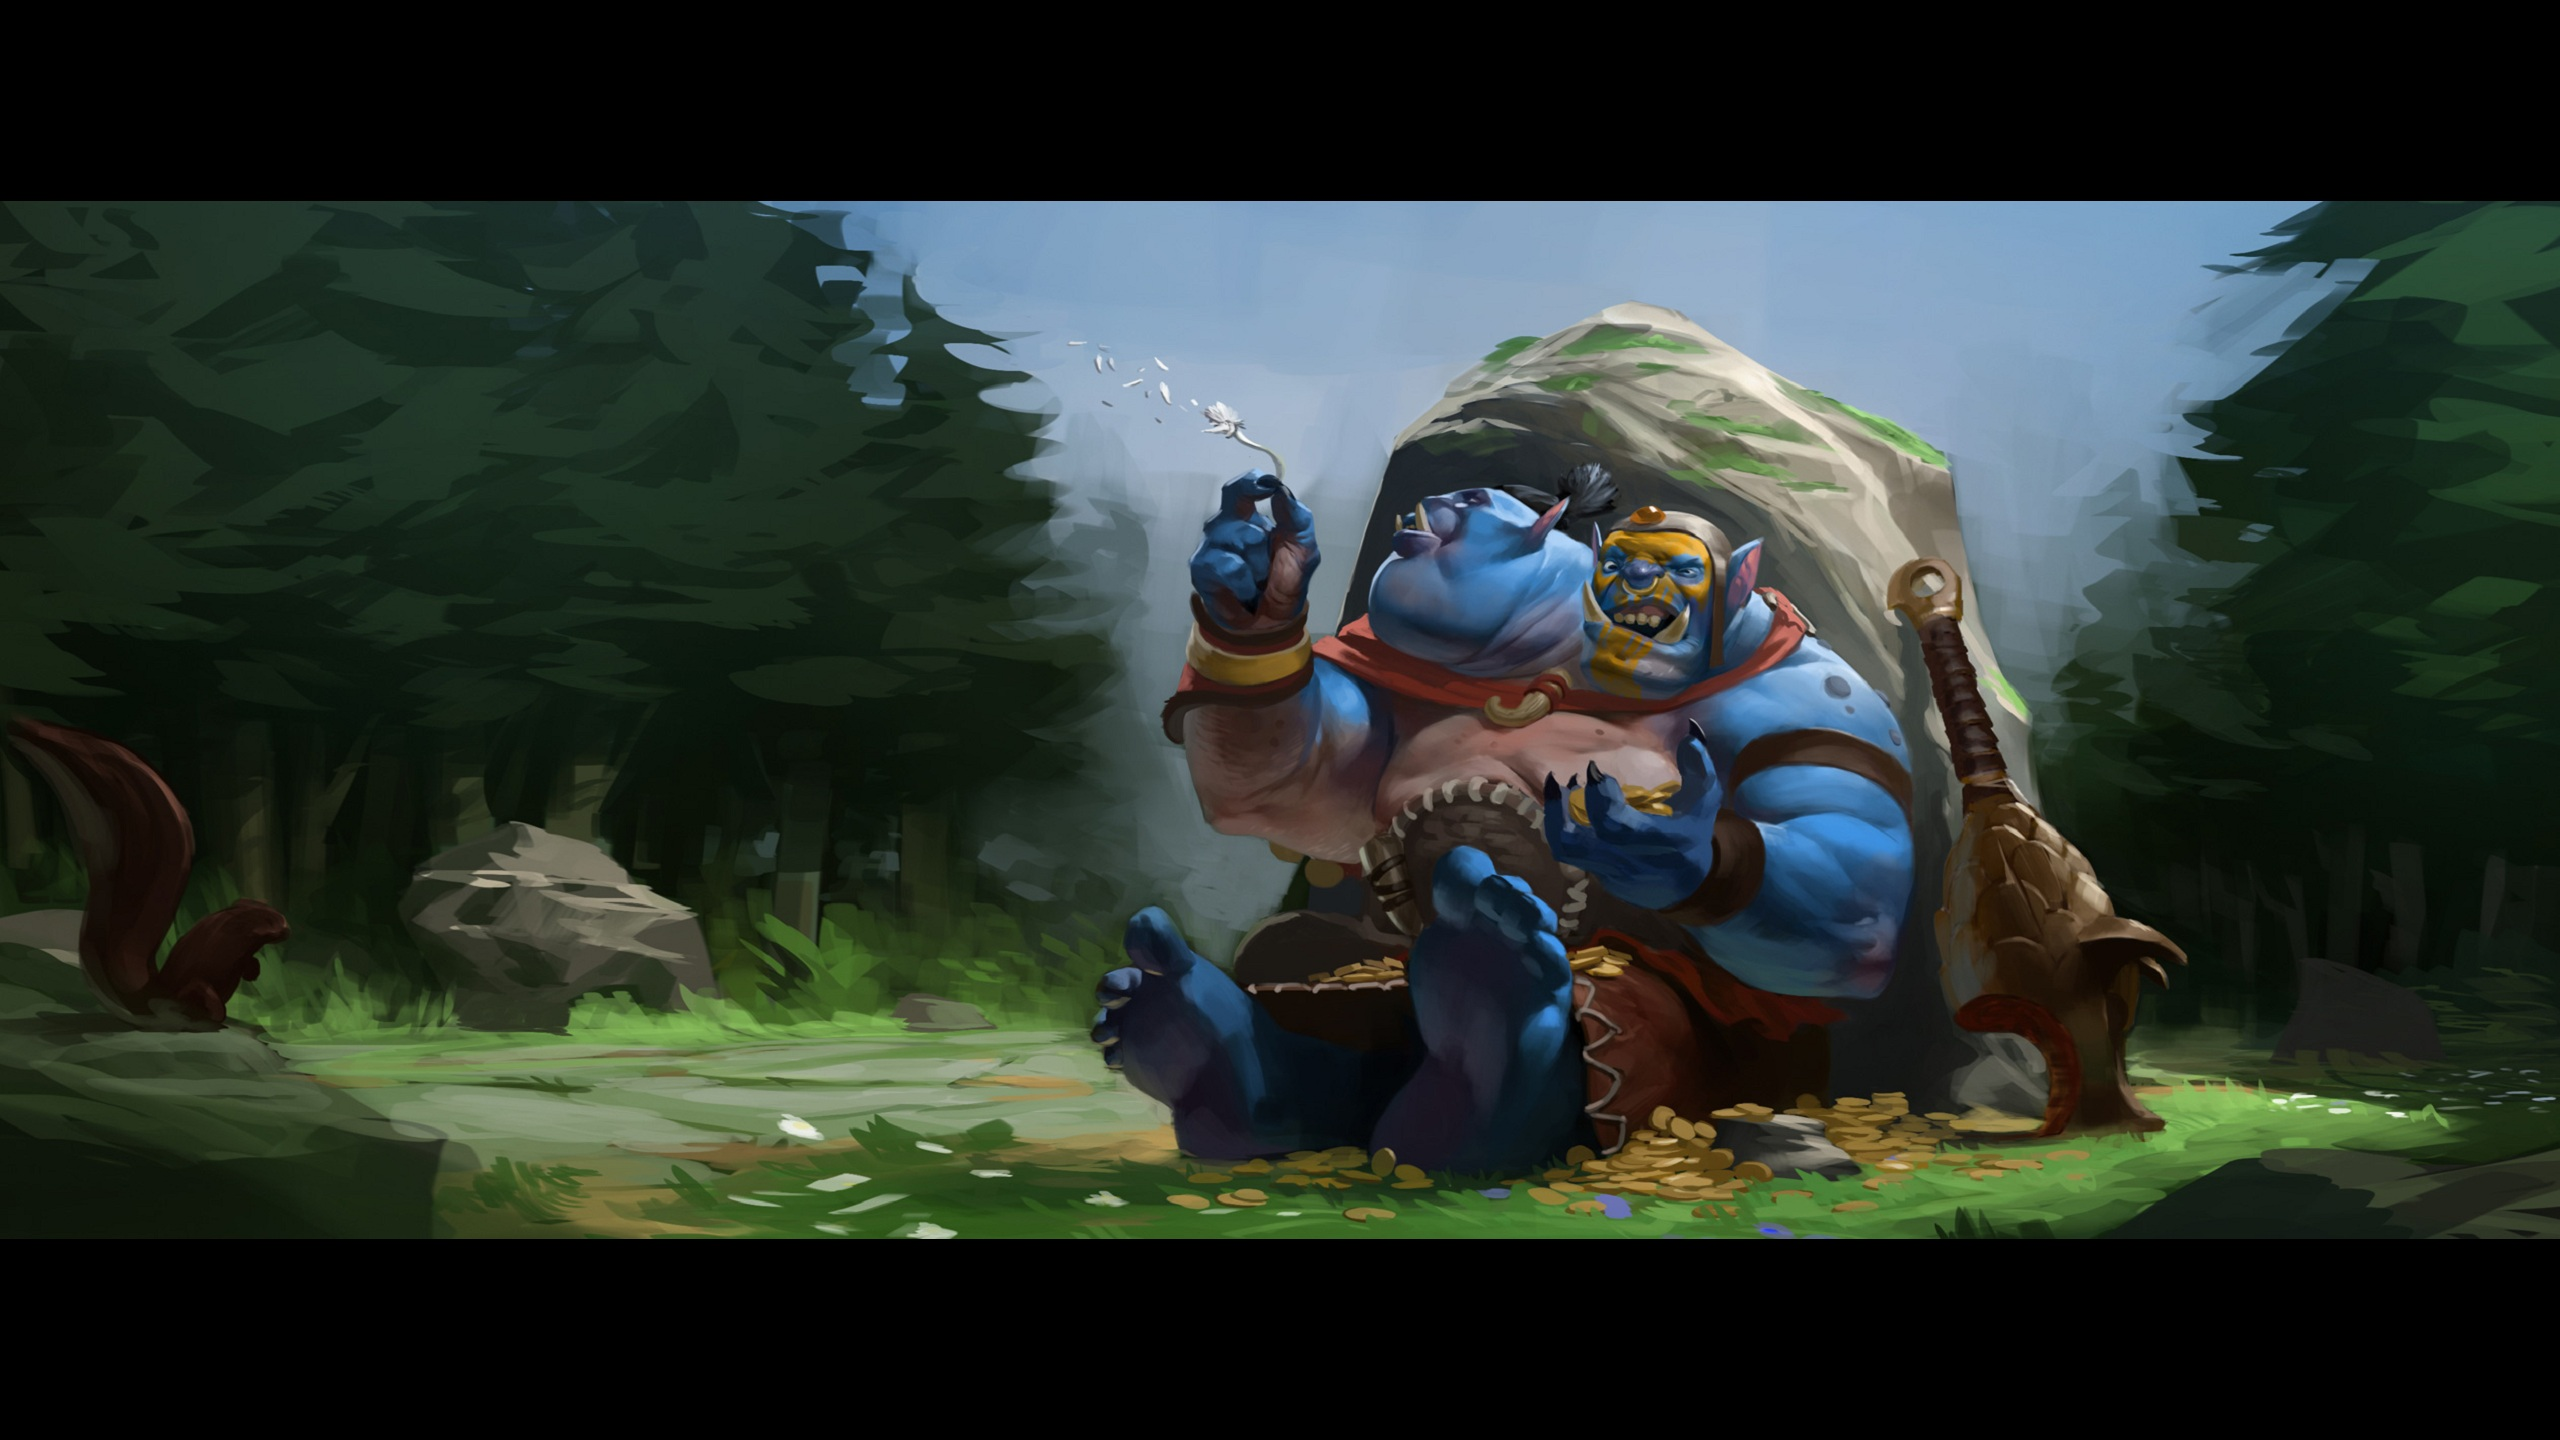 Aggron Stonebreaker the Ogre Magi  Dota 2 Wallpaper 2560x1440